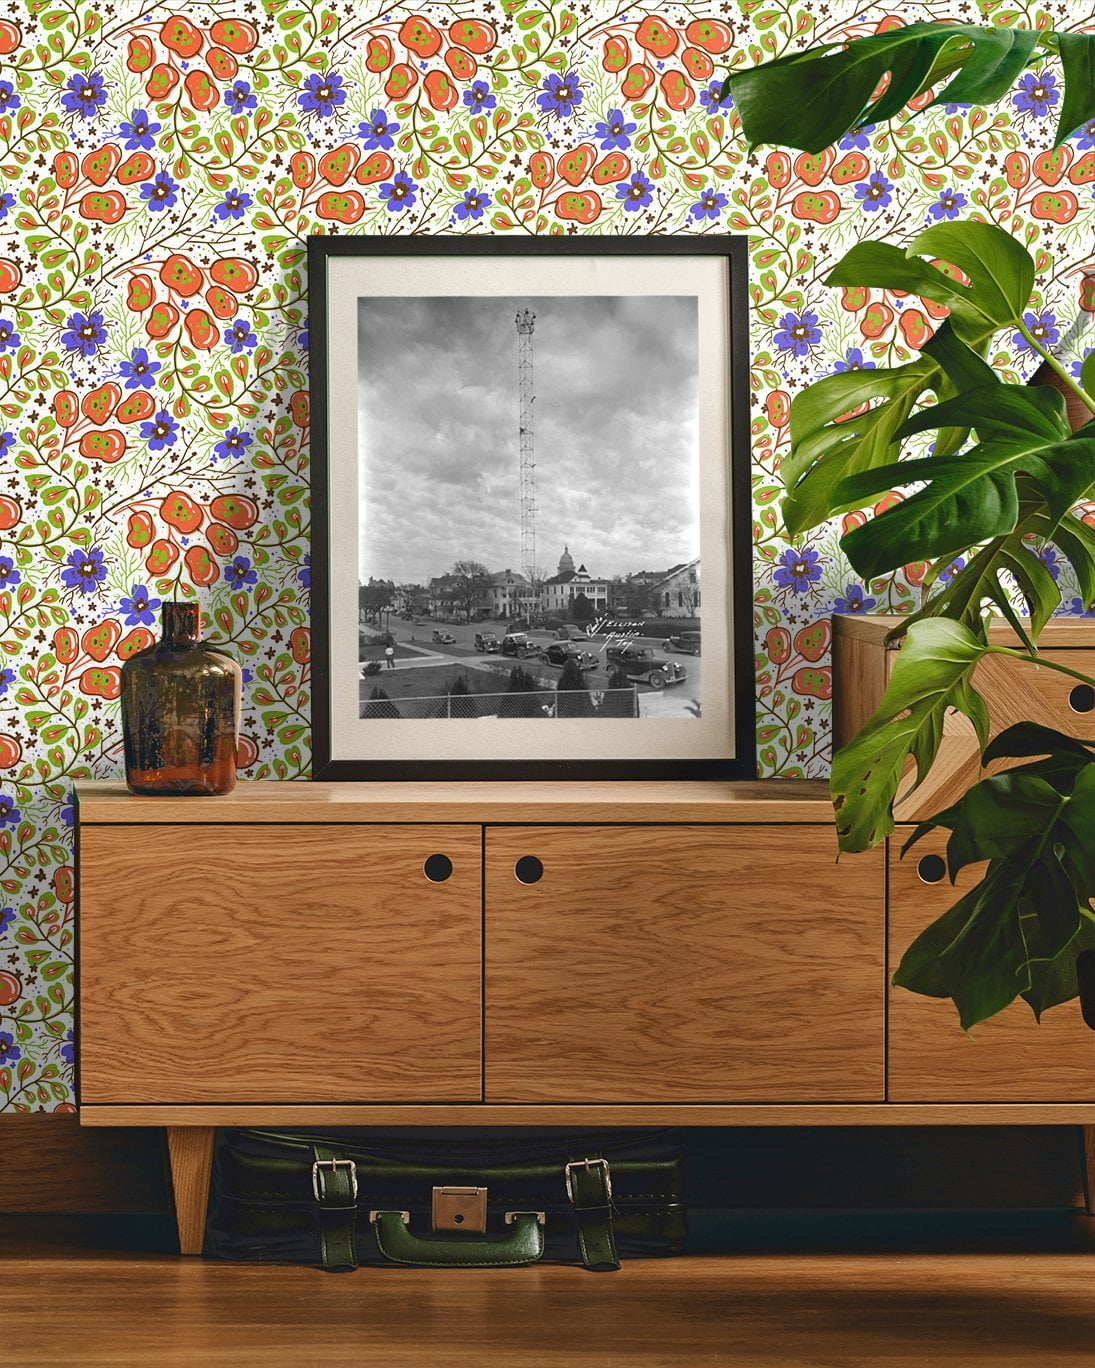 Bright, vivid abstract floral removable wallpaper behind modern credenza with photographs and plants